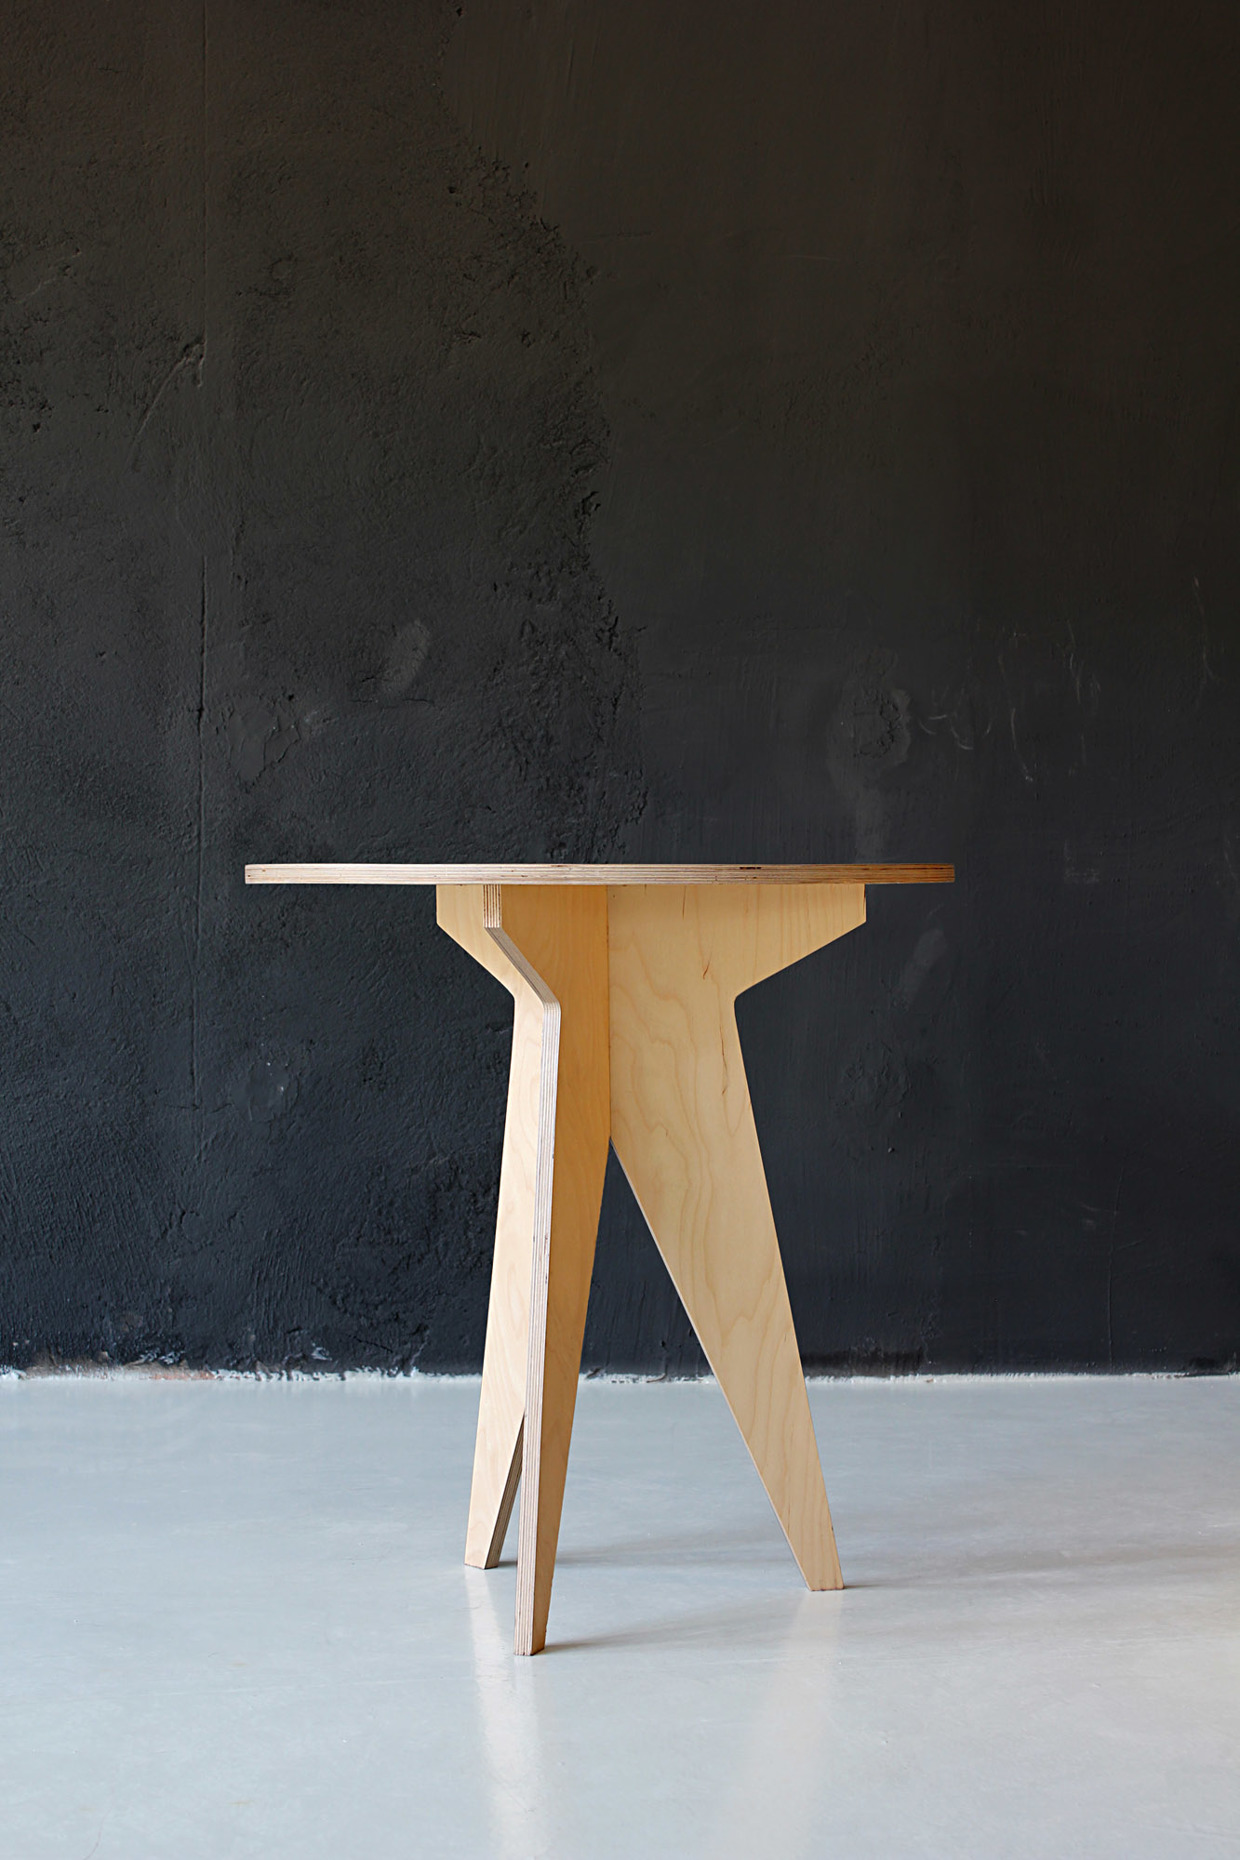 Furniture_P01_Plywood-dontDIY-10